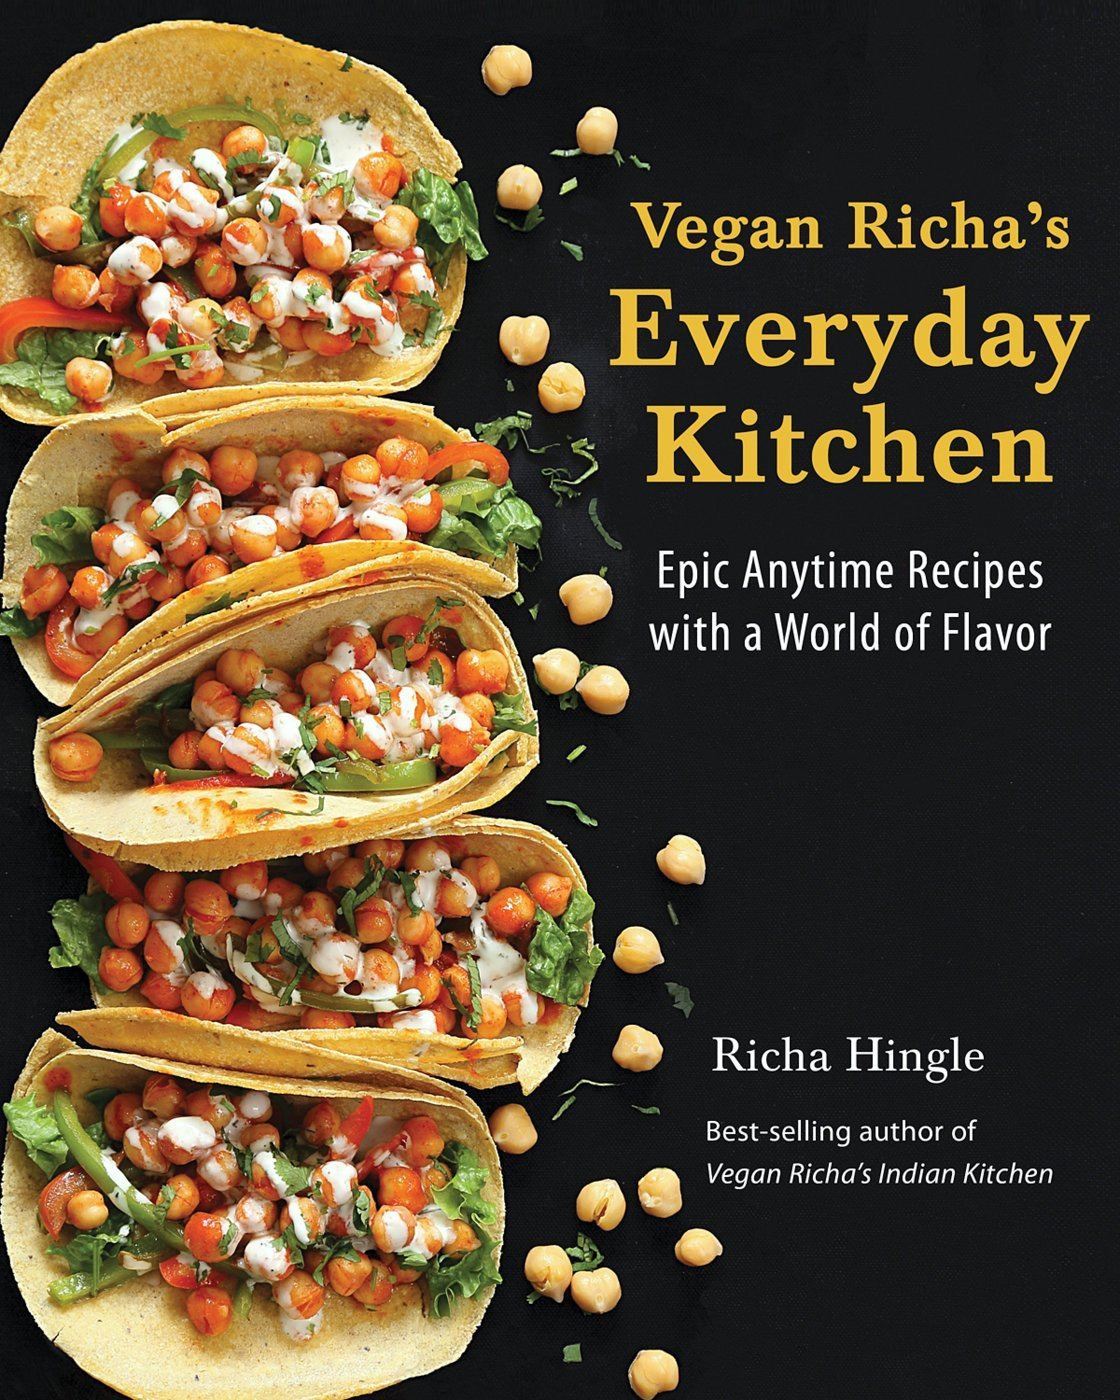 Vegan Richa's Everyday Kitchen Cookbook Now Available everywhere US & International where Books are Sold | VeganRicha.com